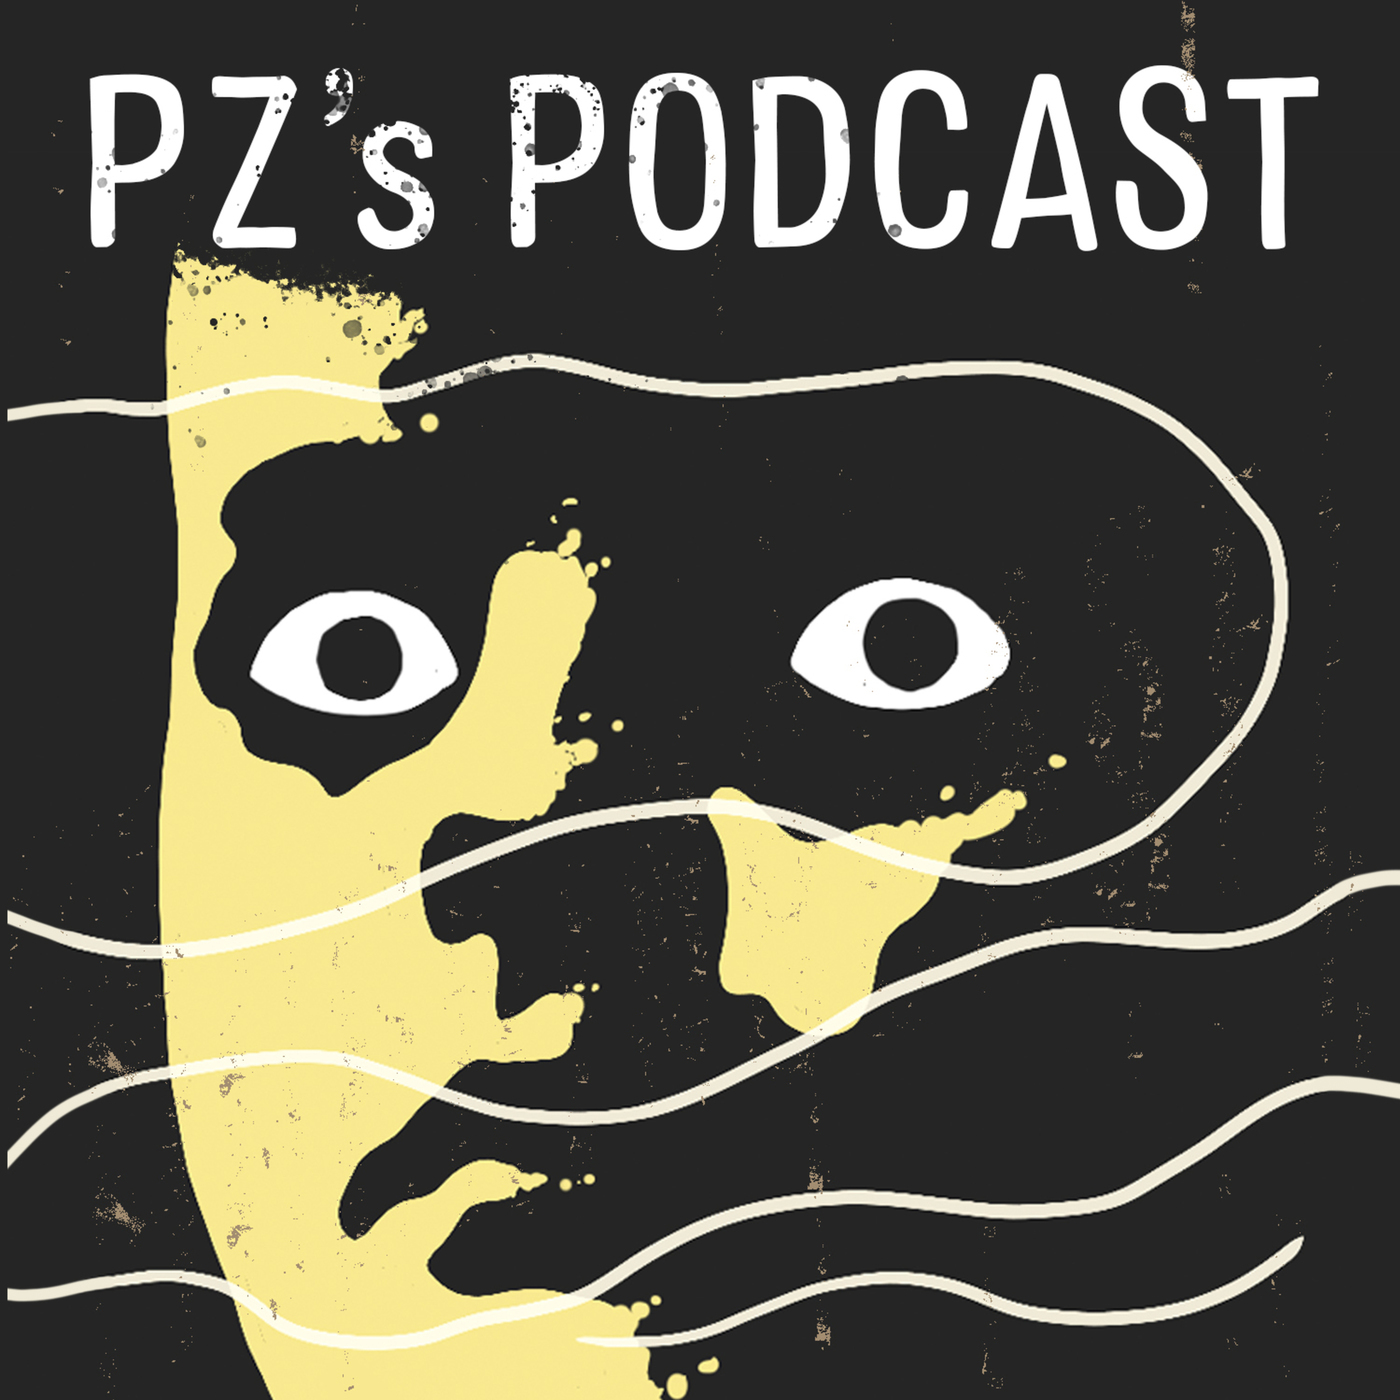 PZ's Podcast: Episode 263 - Too Weak to Fight